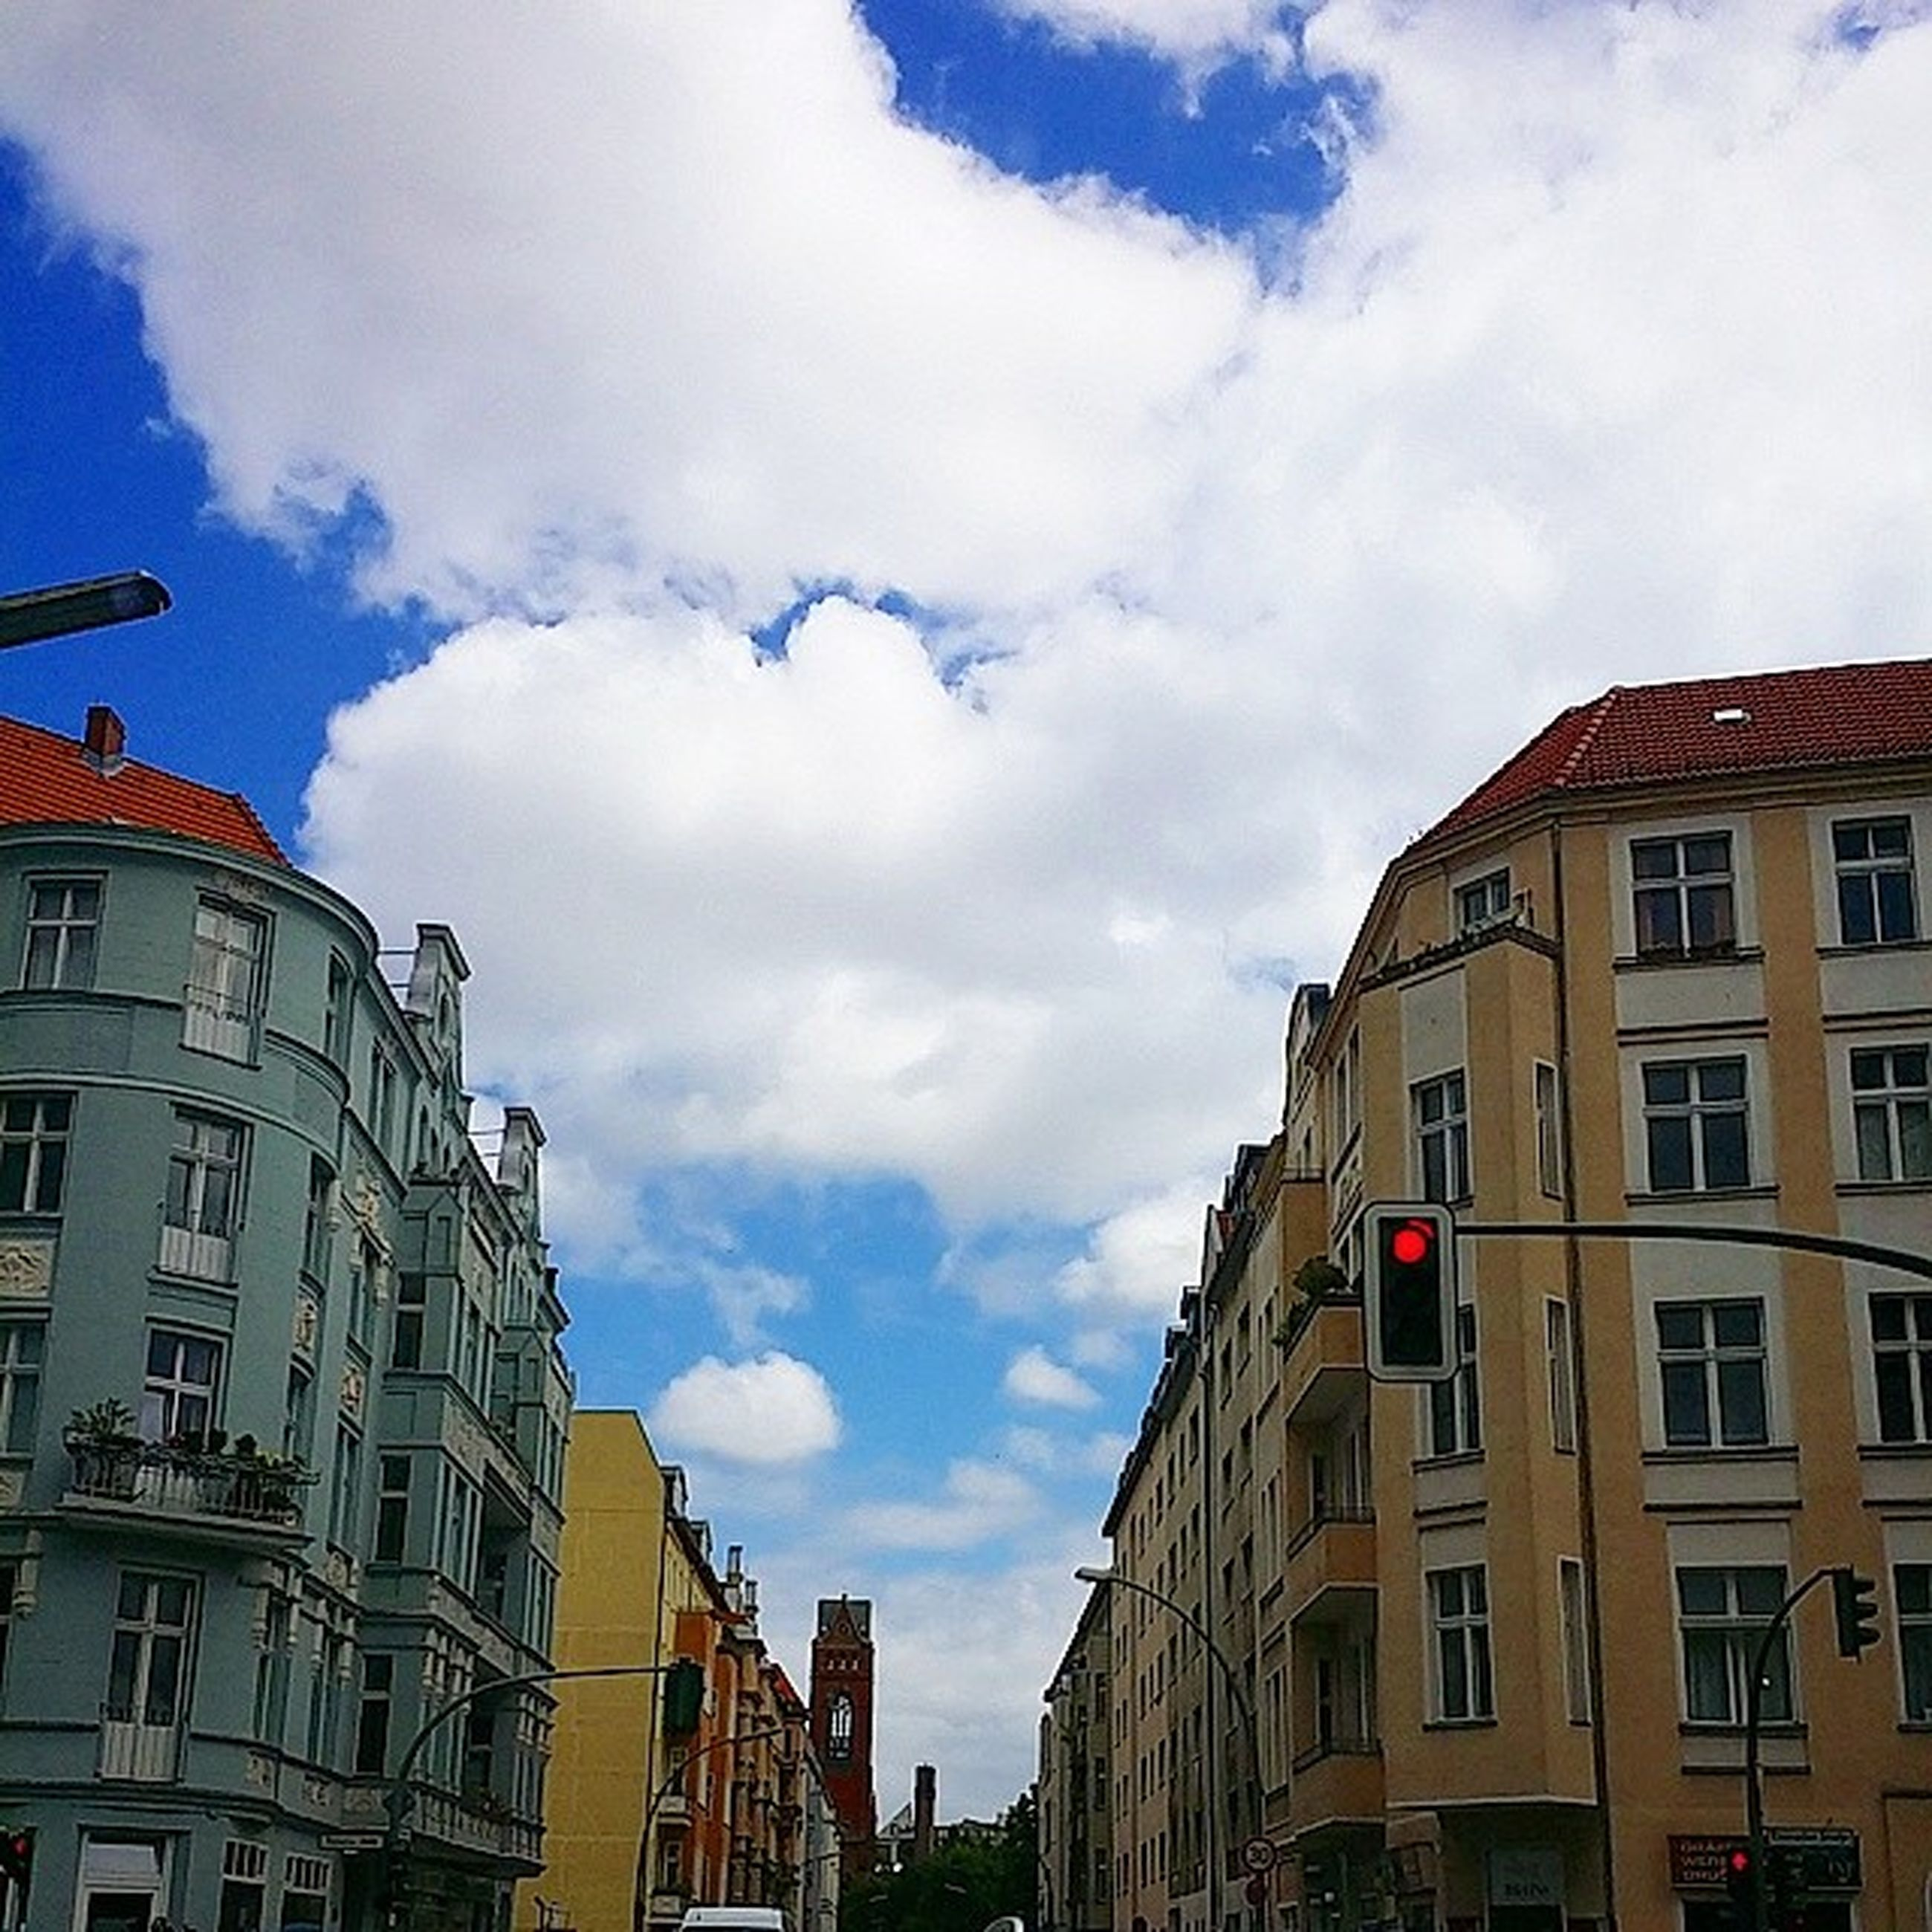 building exterior, architecture, built structure, sky, cloud - sky, low angle view, residential building, residential structure, cloudy, city, building, cloud, window, day, outdoors, house, residential district, city life, no people, overcast